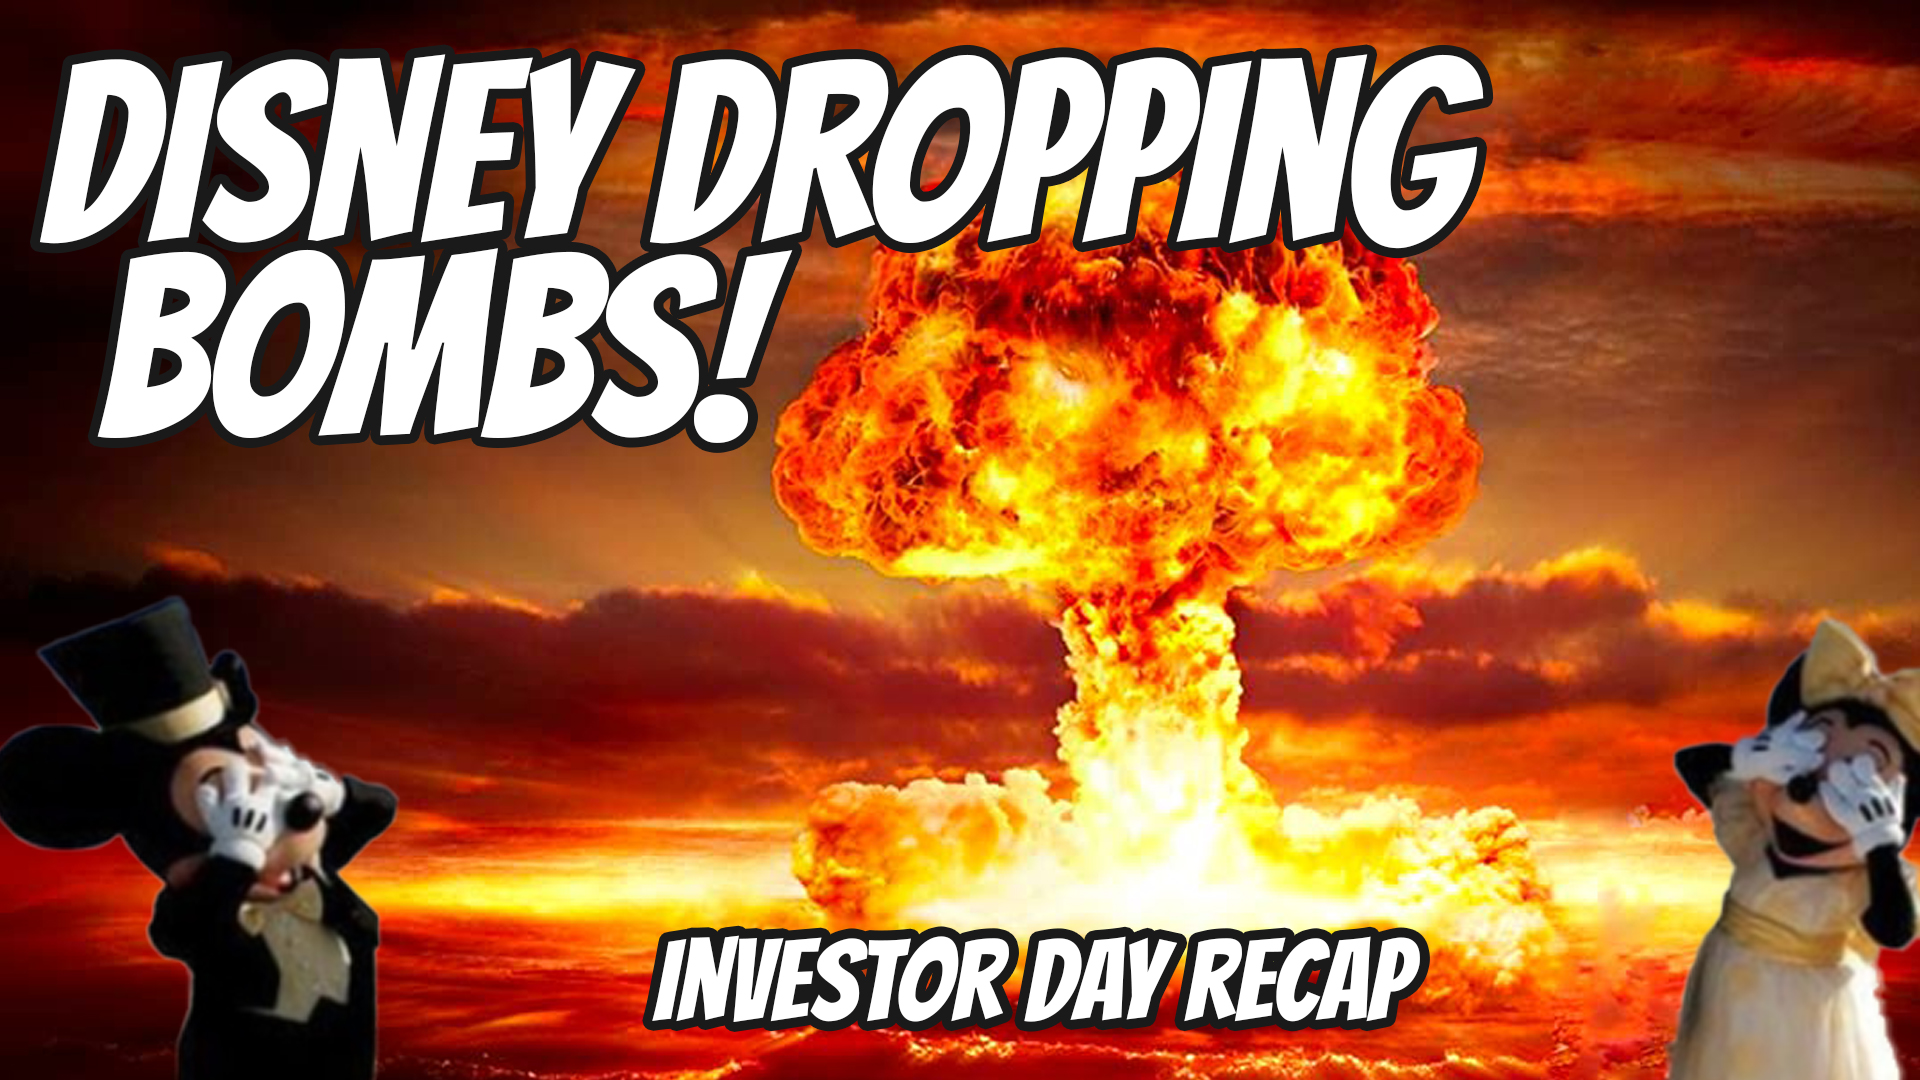 Disney dropping major bombs yesterday! | Disney Investor Day 2020 Announcements | The LOWKEY GEEK Podcast #25